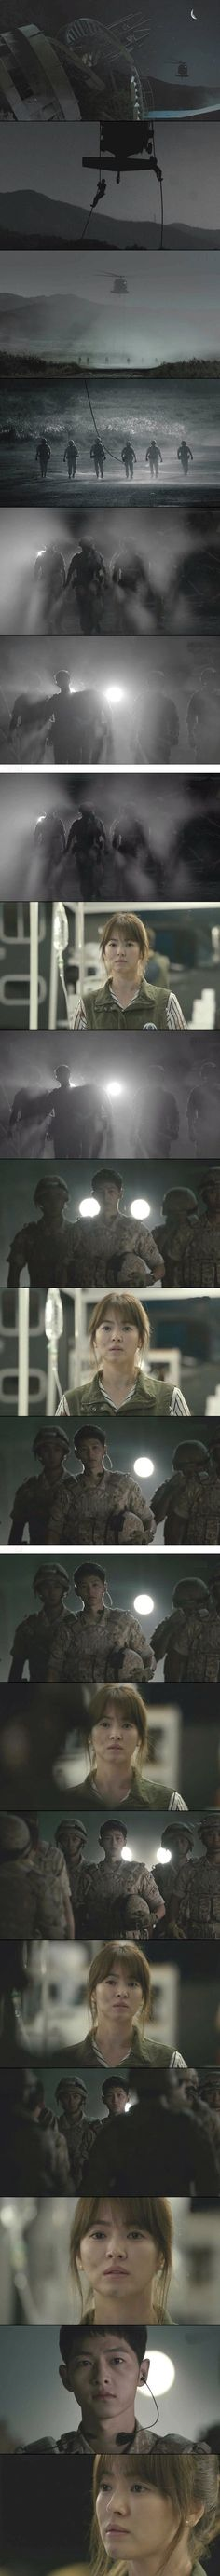 Descendants of the Sun (태양의 후예) Korean - Drama - Episode 7 - Picture @ HanCinema :: The Korean Movie and Drama Database